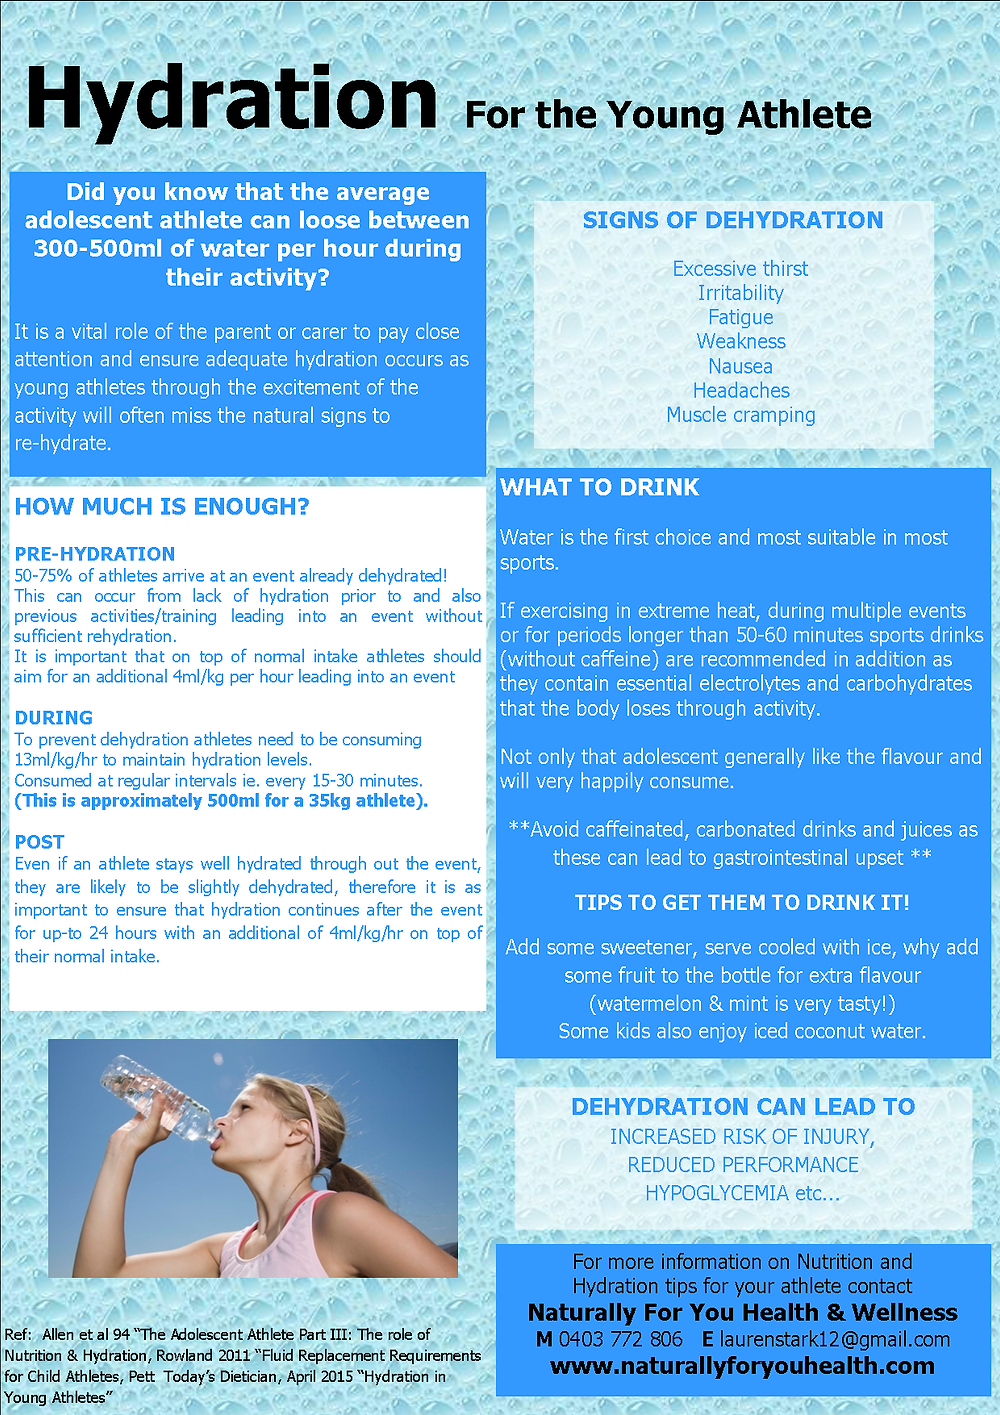 Hydration for the Young Athlete by Lauren Stark